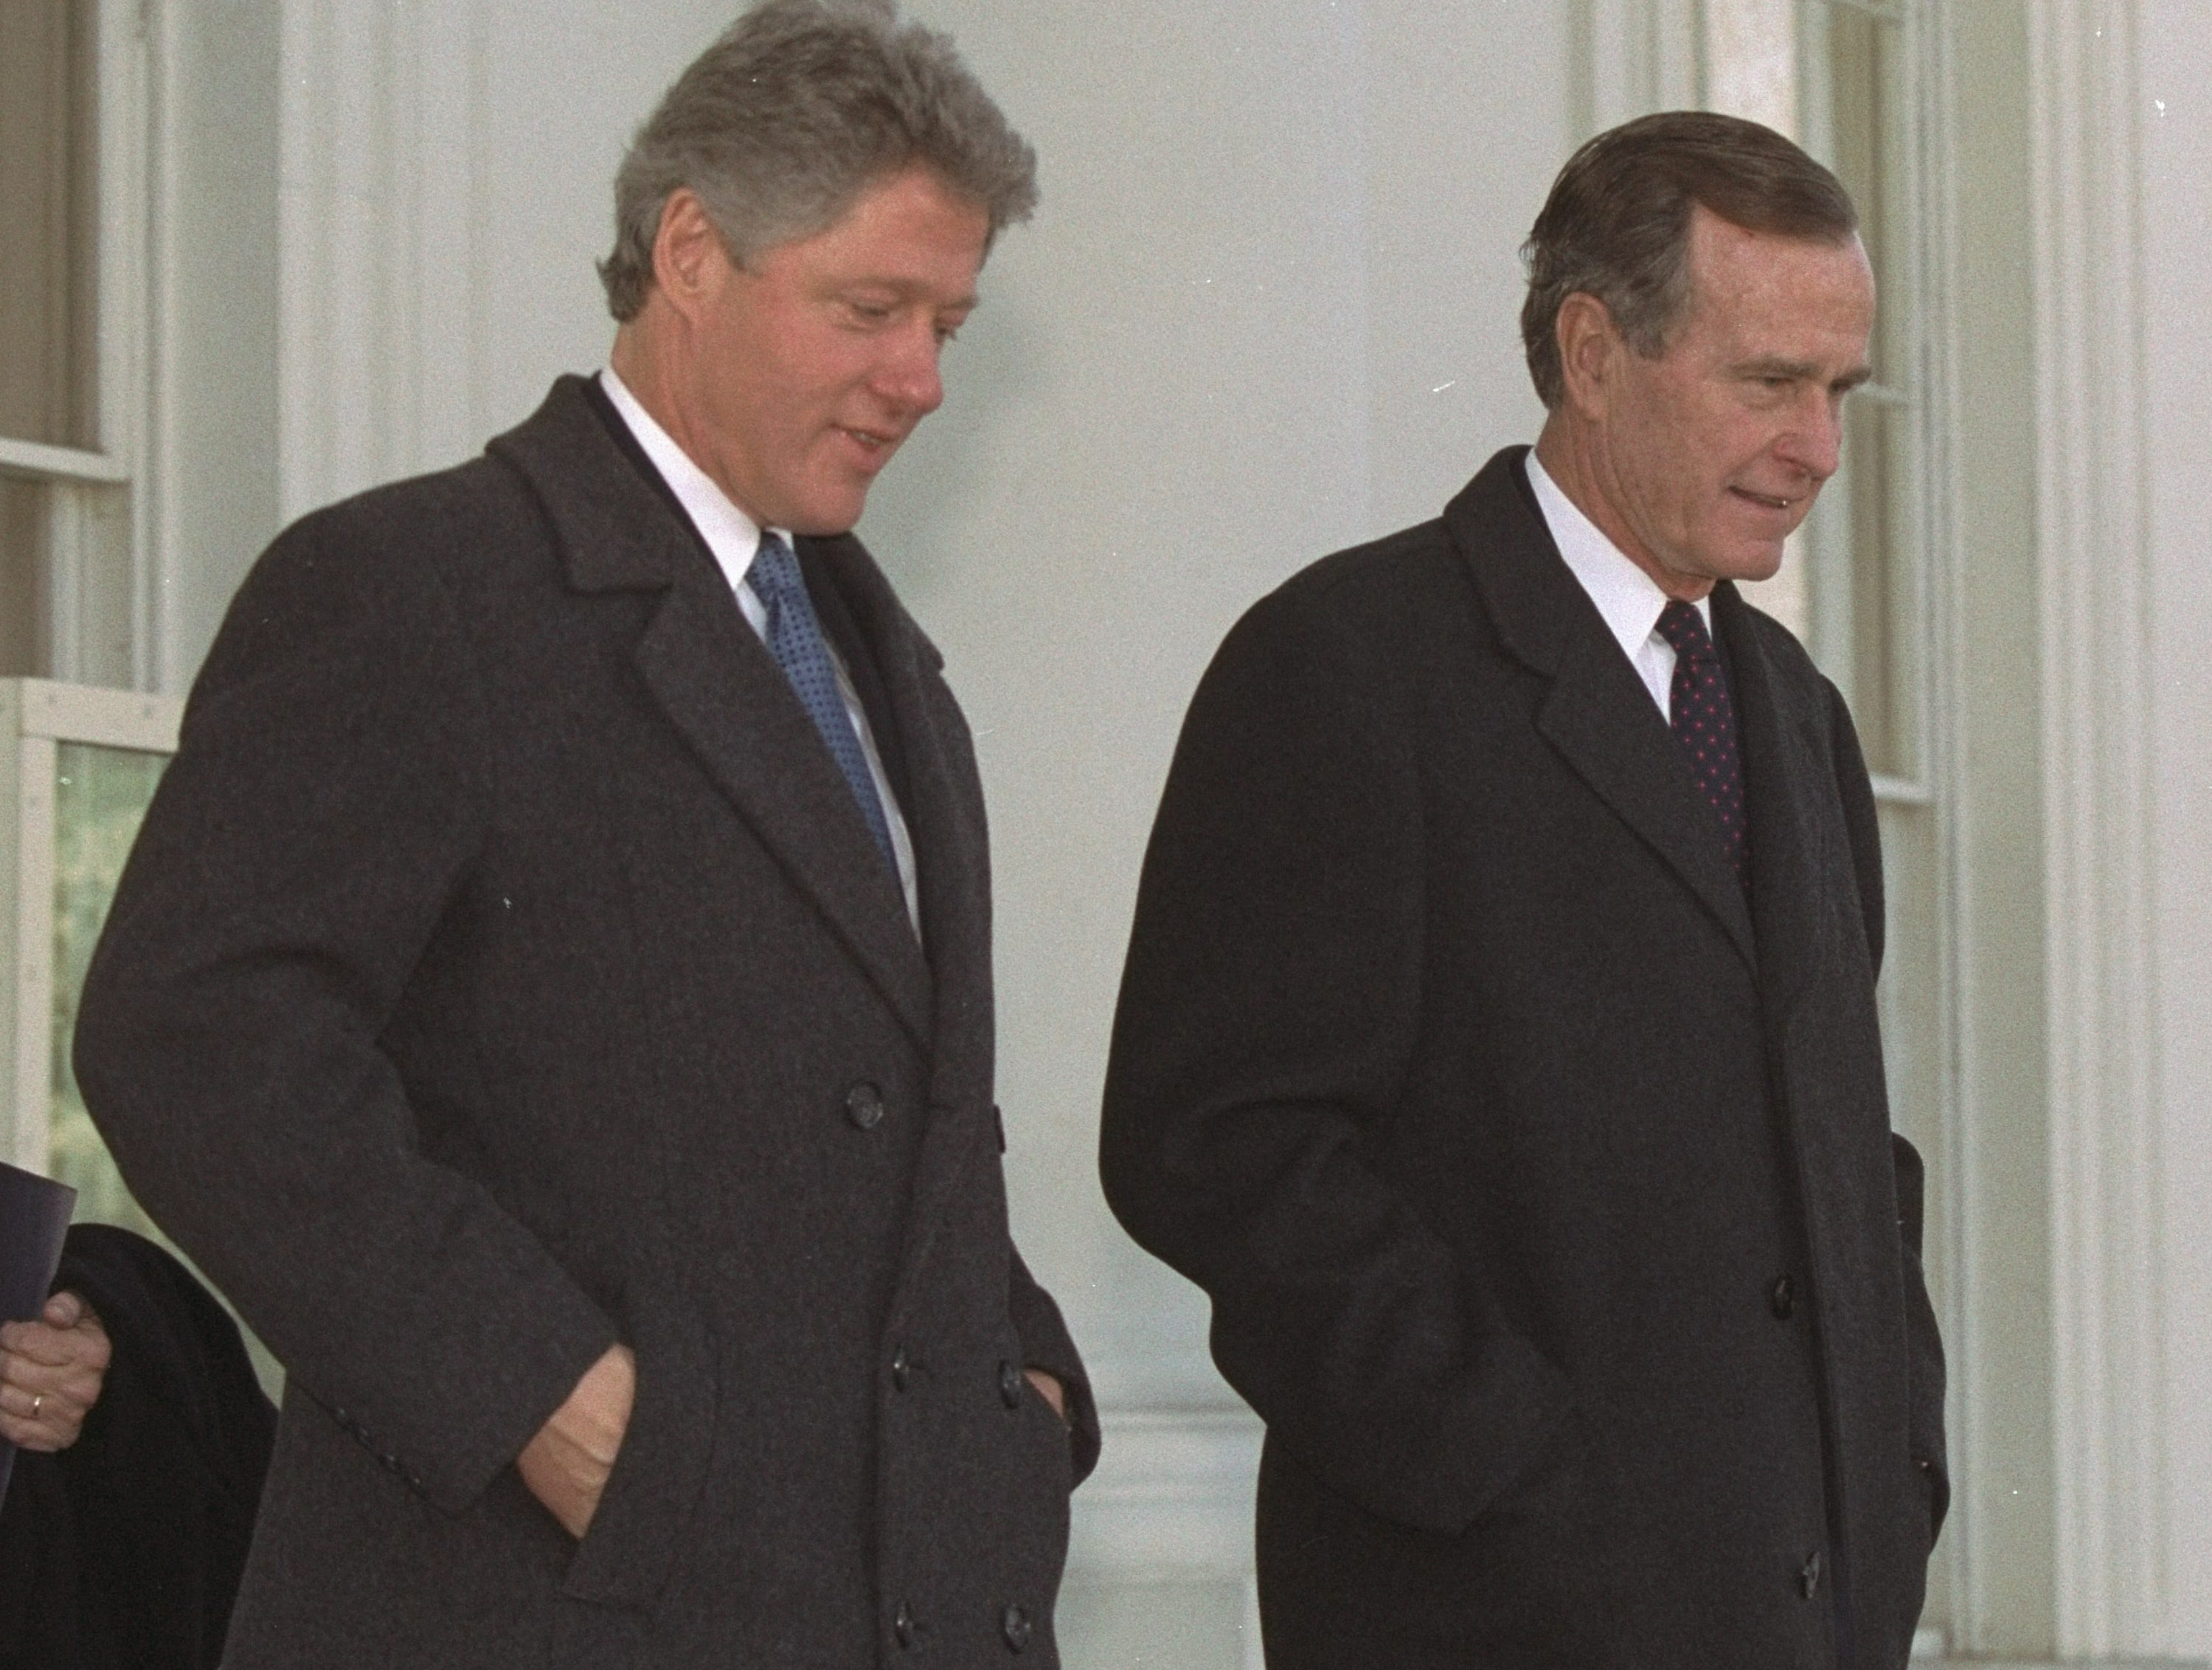 President Bush, along with President-elect Clinton, leaves the White House for the last time as President Wednesday, January 20, 1993.  The two left for Capitol Hill and the swearing in of Clinton as the 42nd President of the United States.  (AP Photo/Doug Mills)